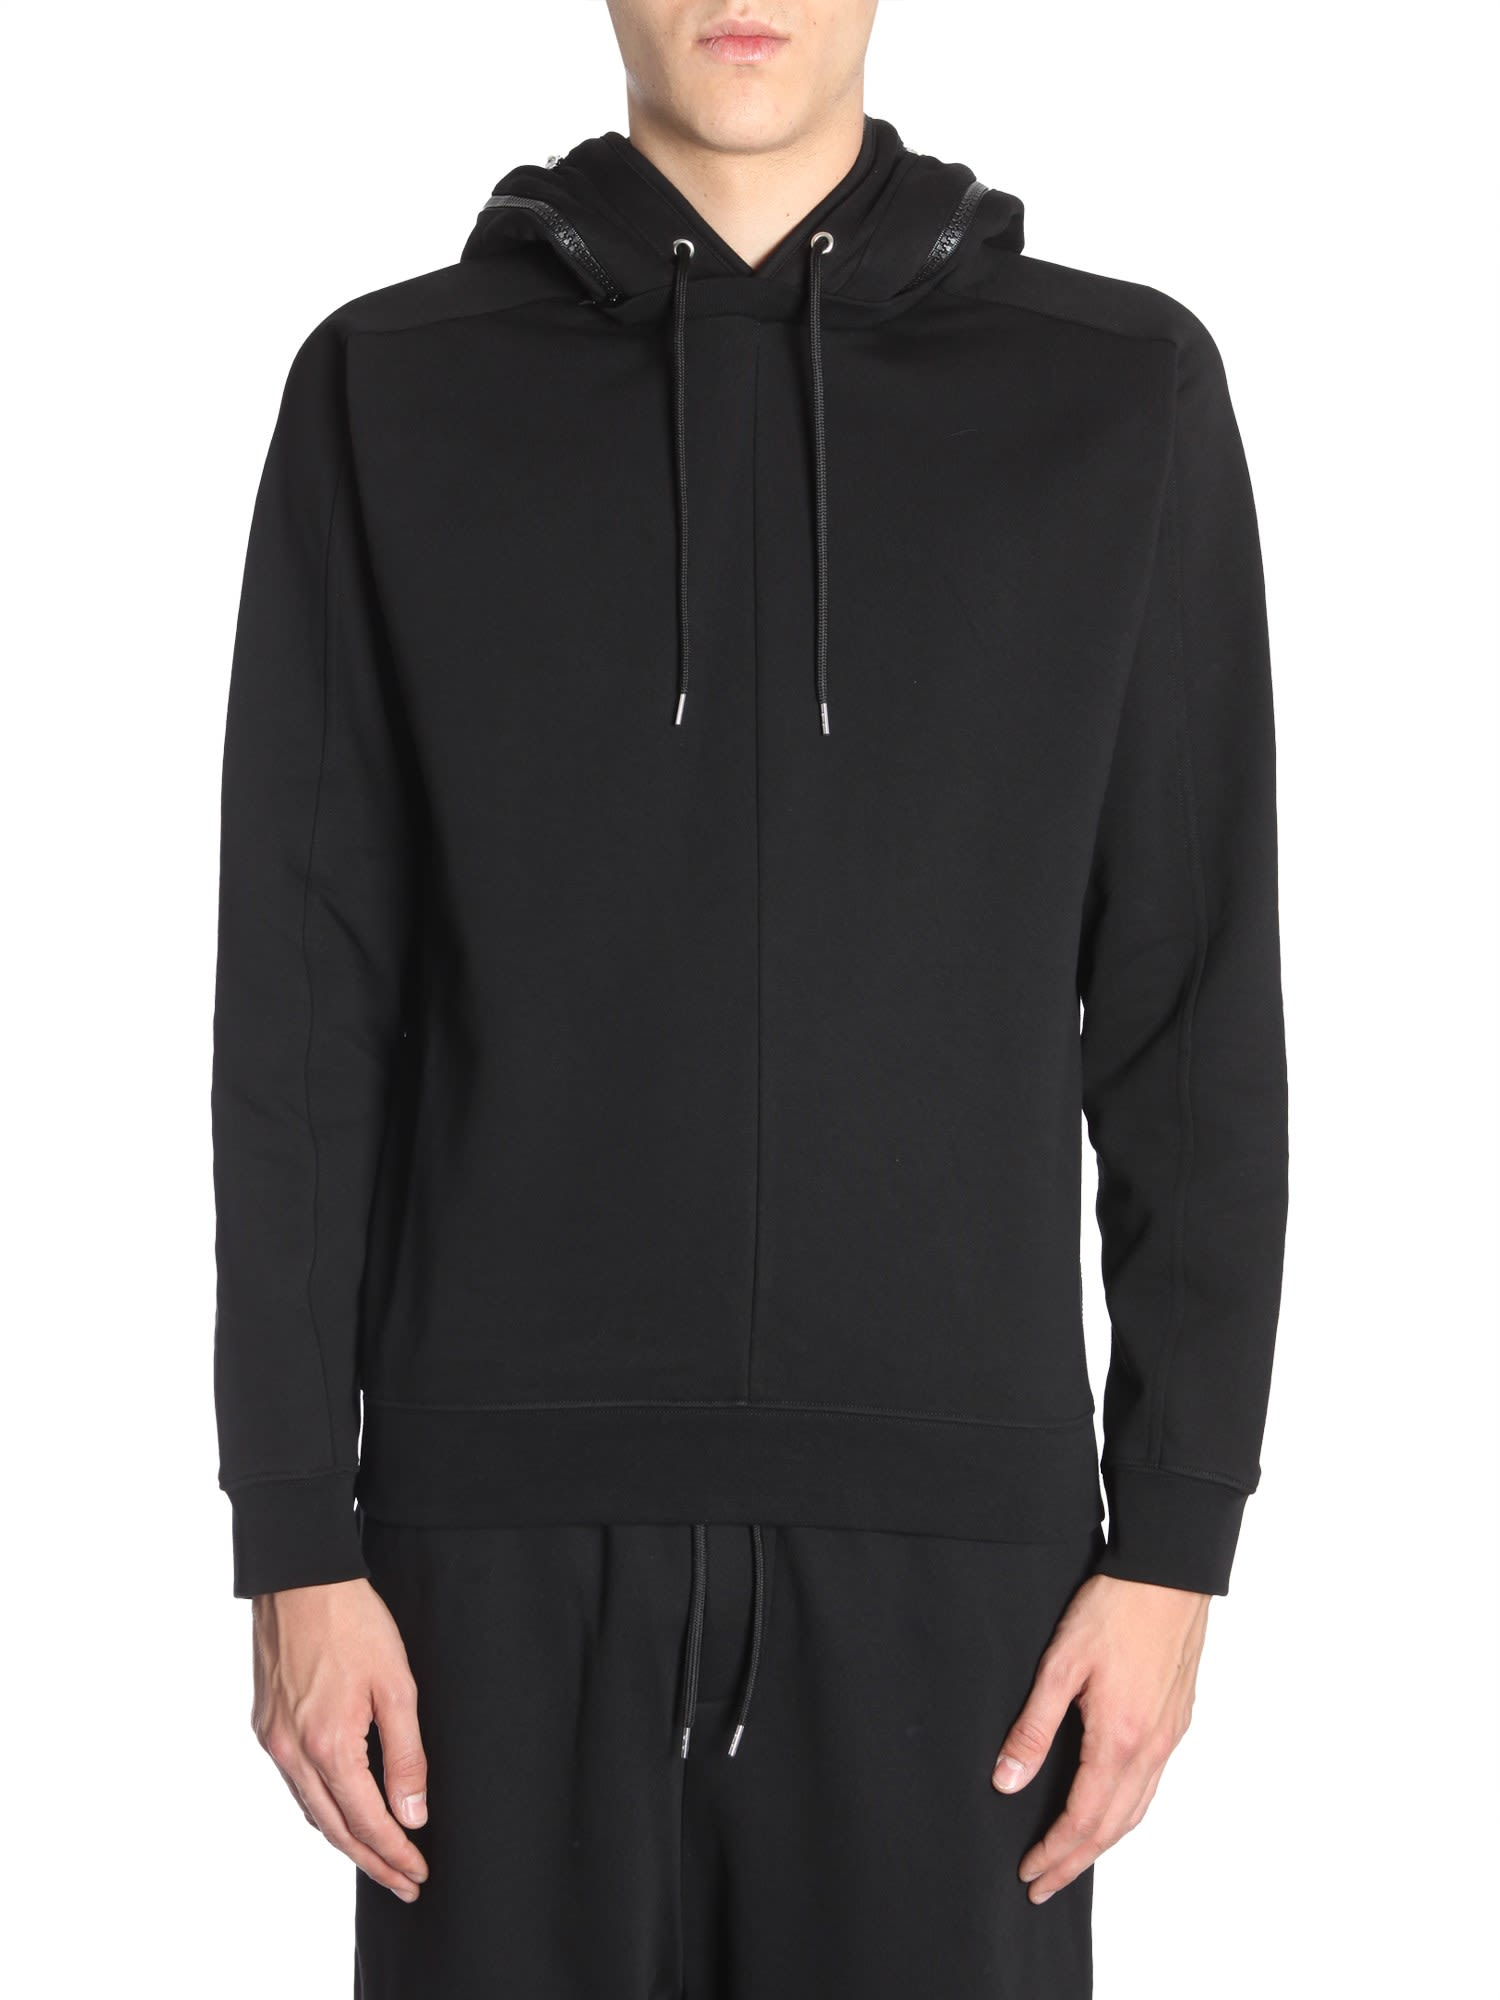 MCQ BY ALEXANDER MCQUEEN HOODED SWEATSHIRT